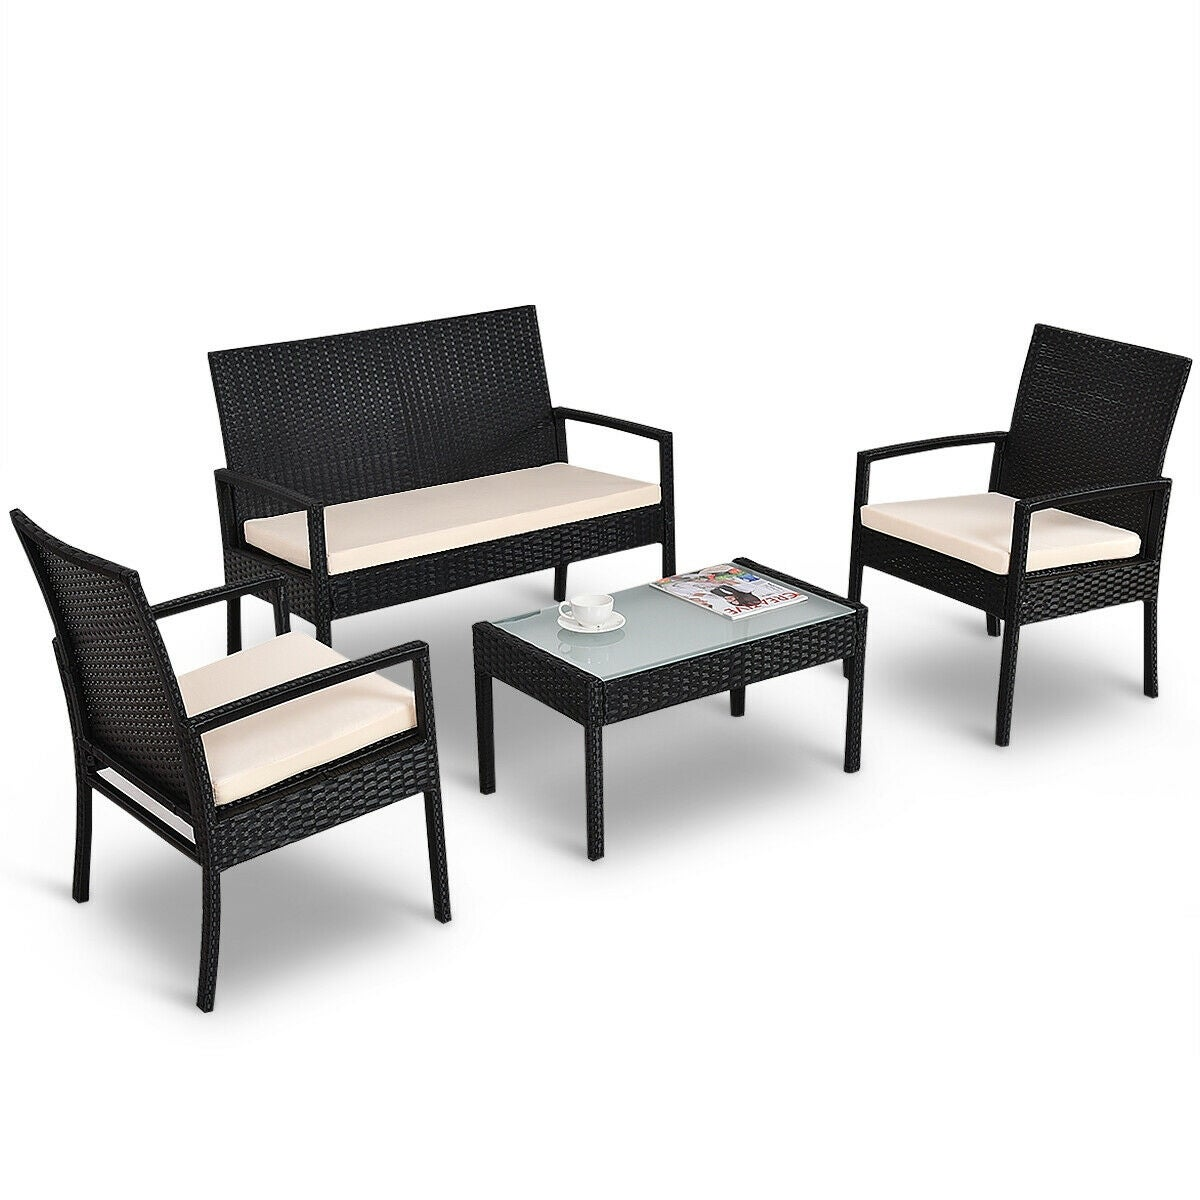 Shop Costway 4 Pcs Outdoor Patio Furniture Set Table Chair Sofa